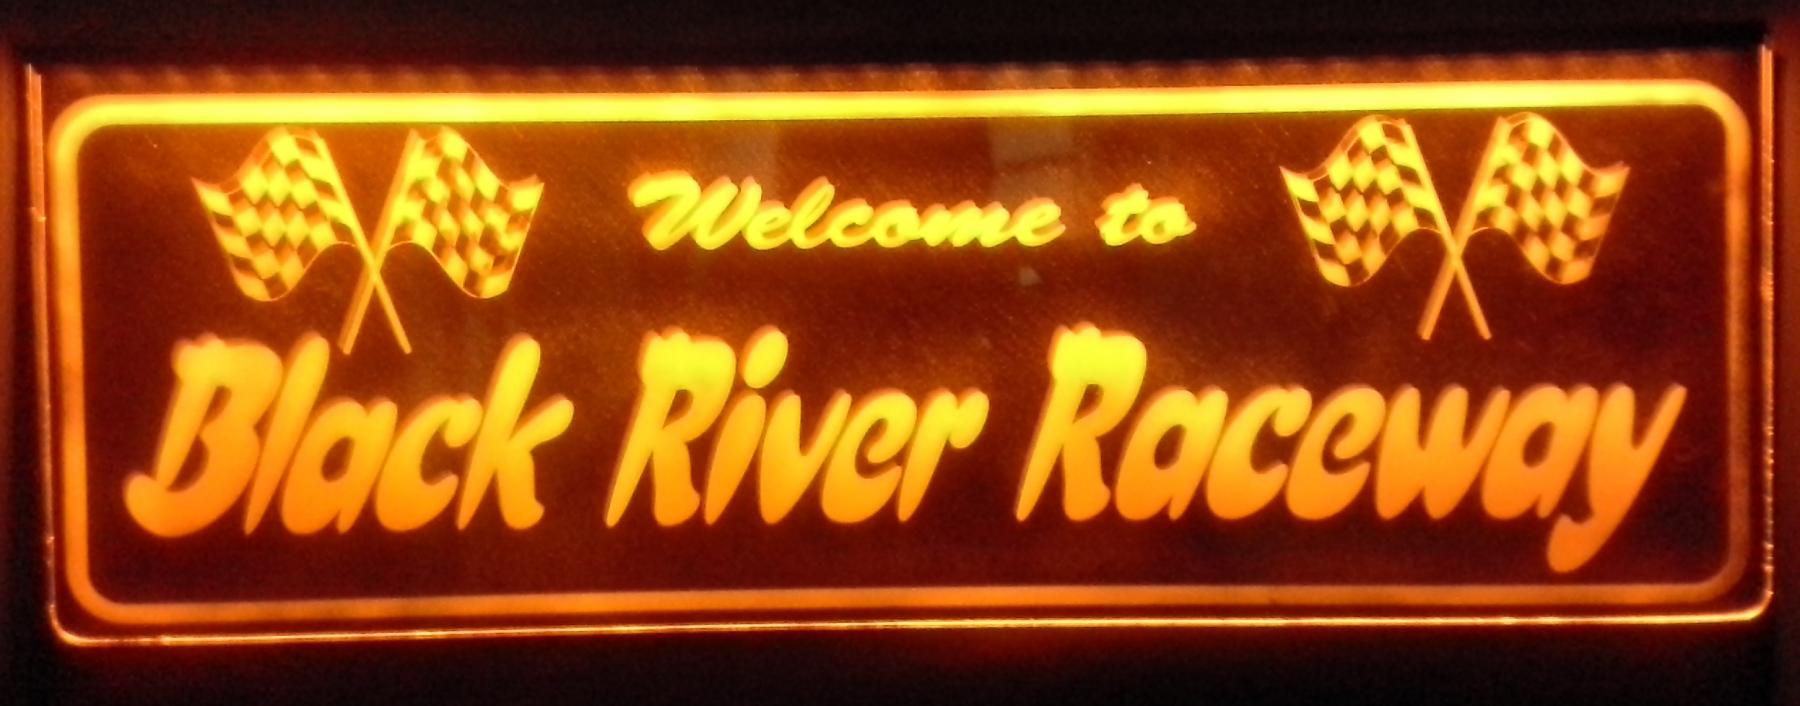 black river sign.jpg